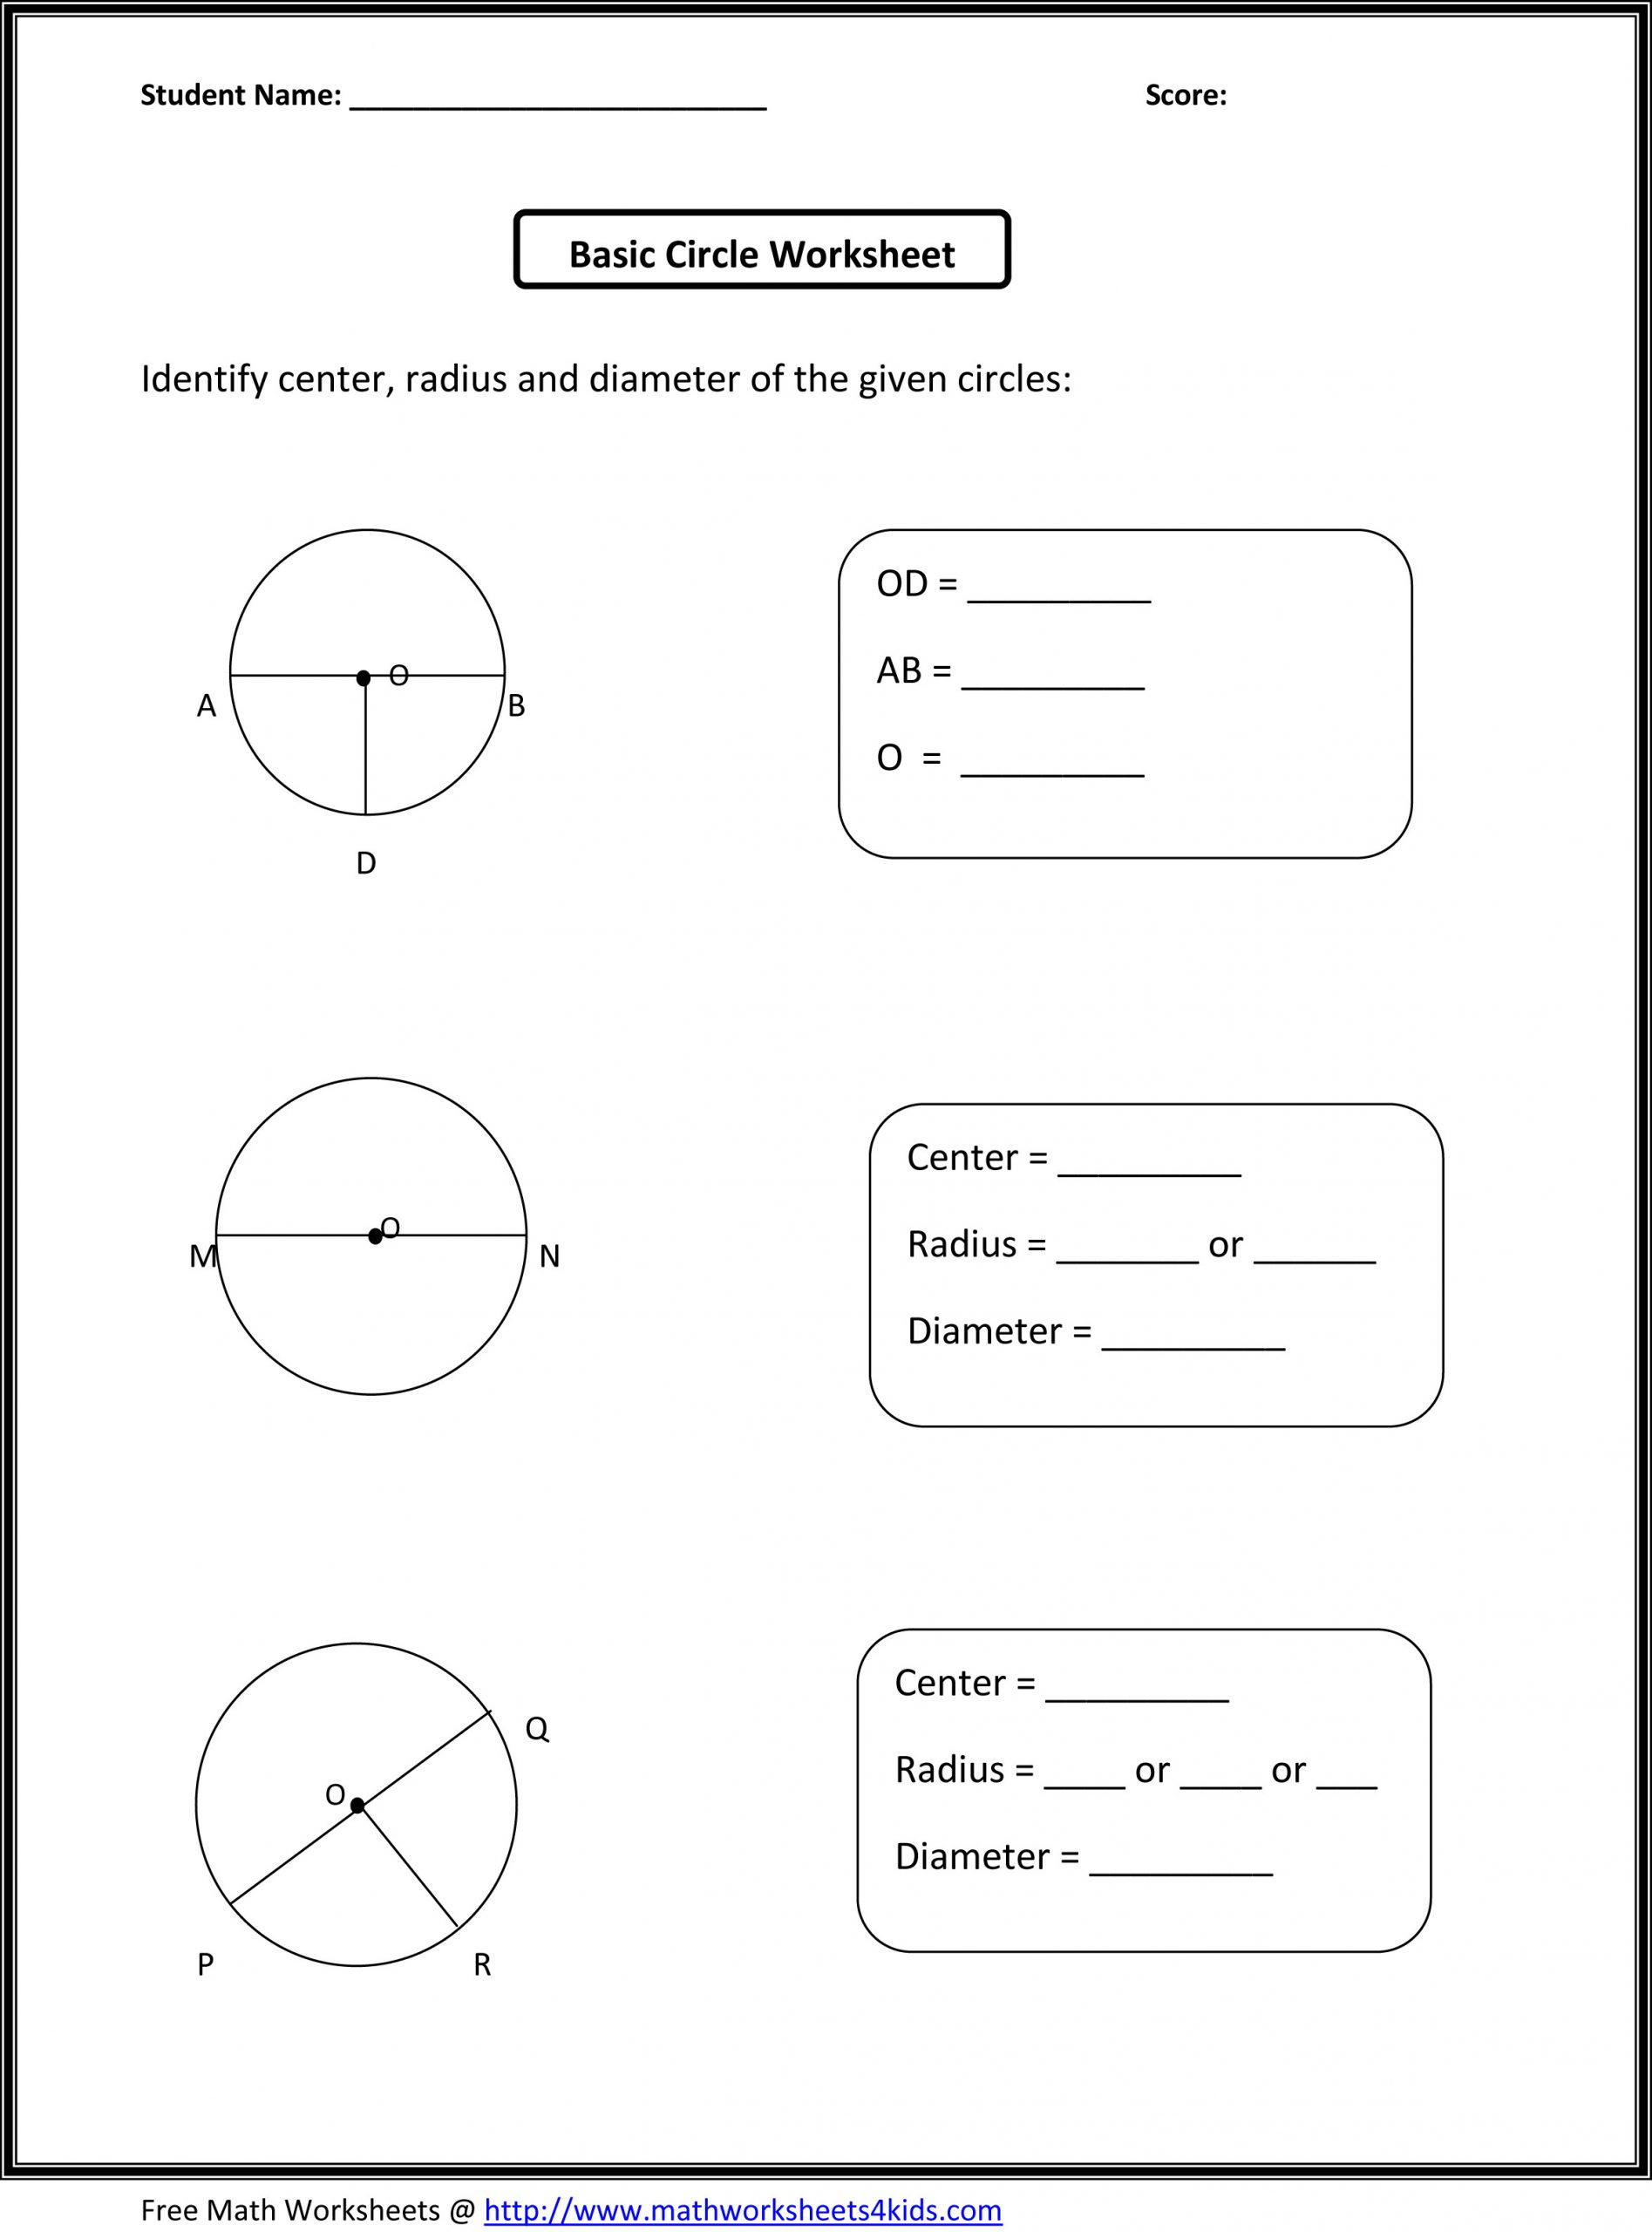 Number Patterns Worksheets 3rd Grade Math Patterns Worksheets Grade 3